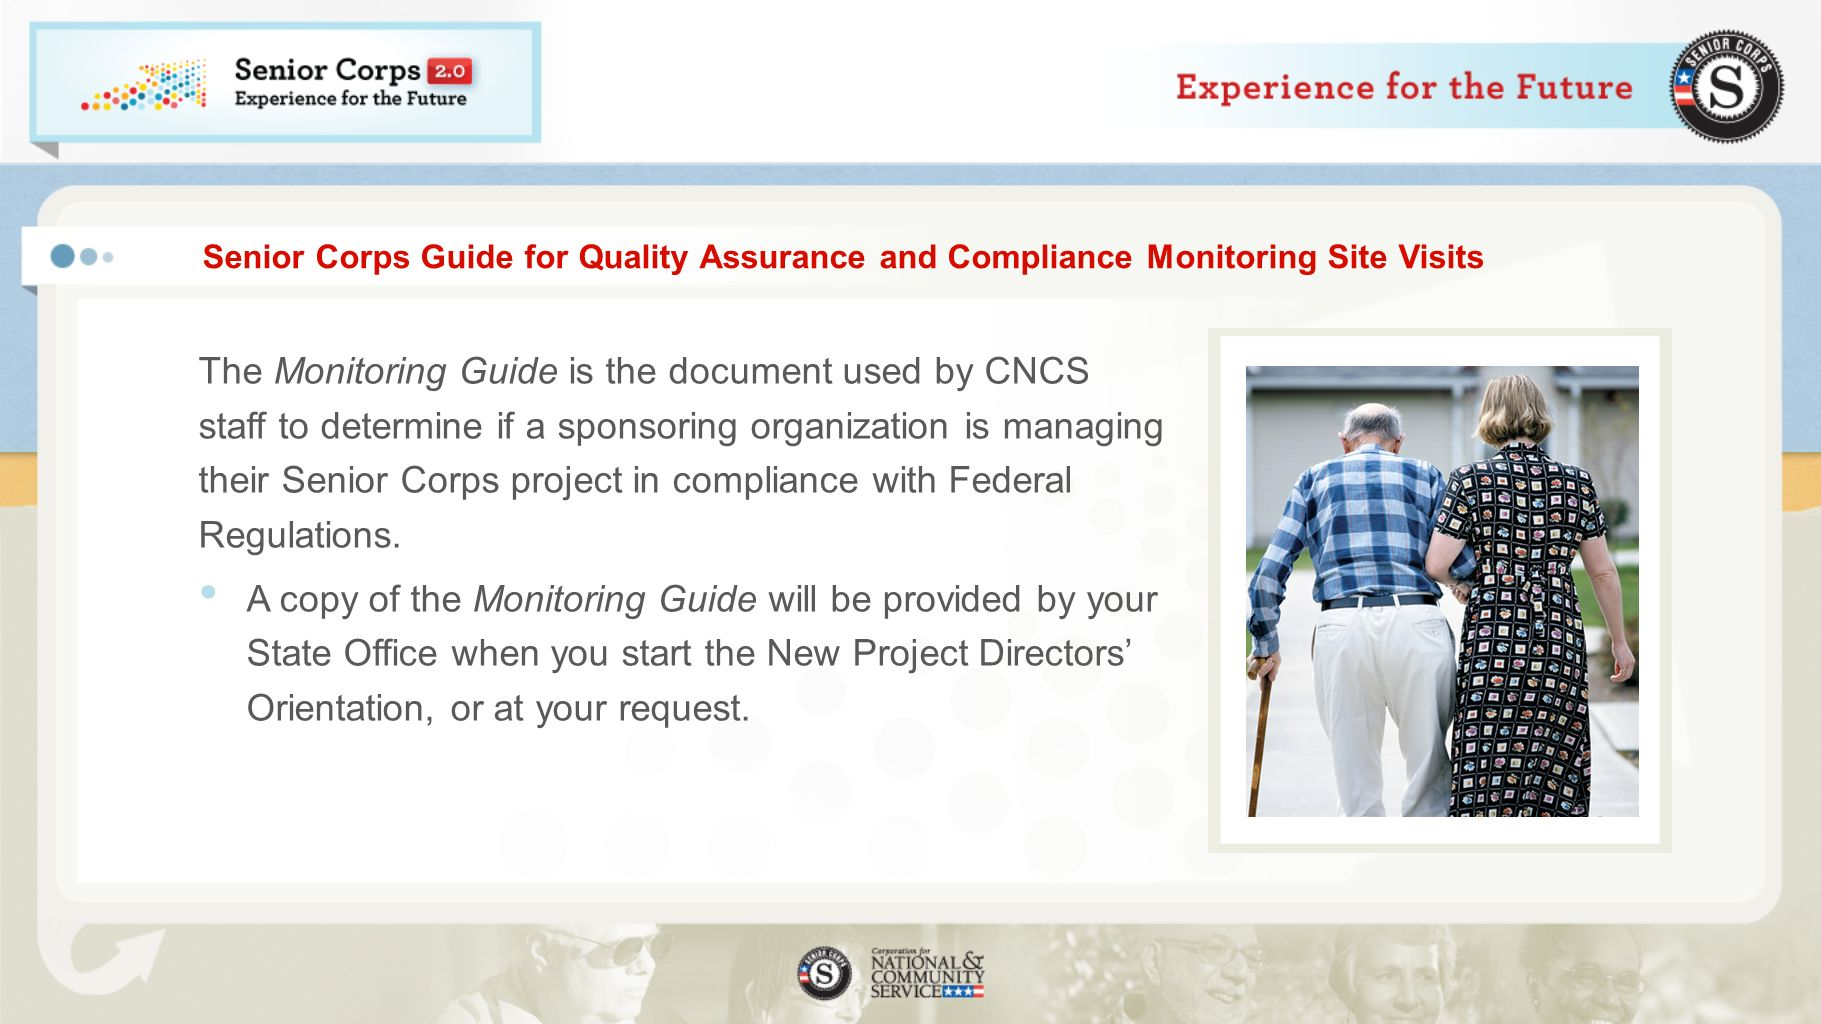 Senior Corps Guide for Quality Assurance and Compliance Monitoring Site Visits